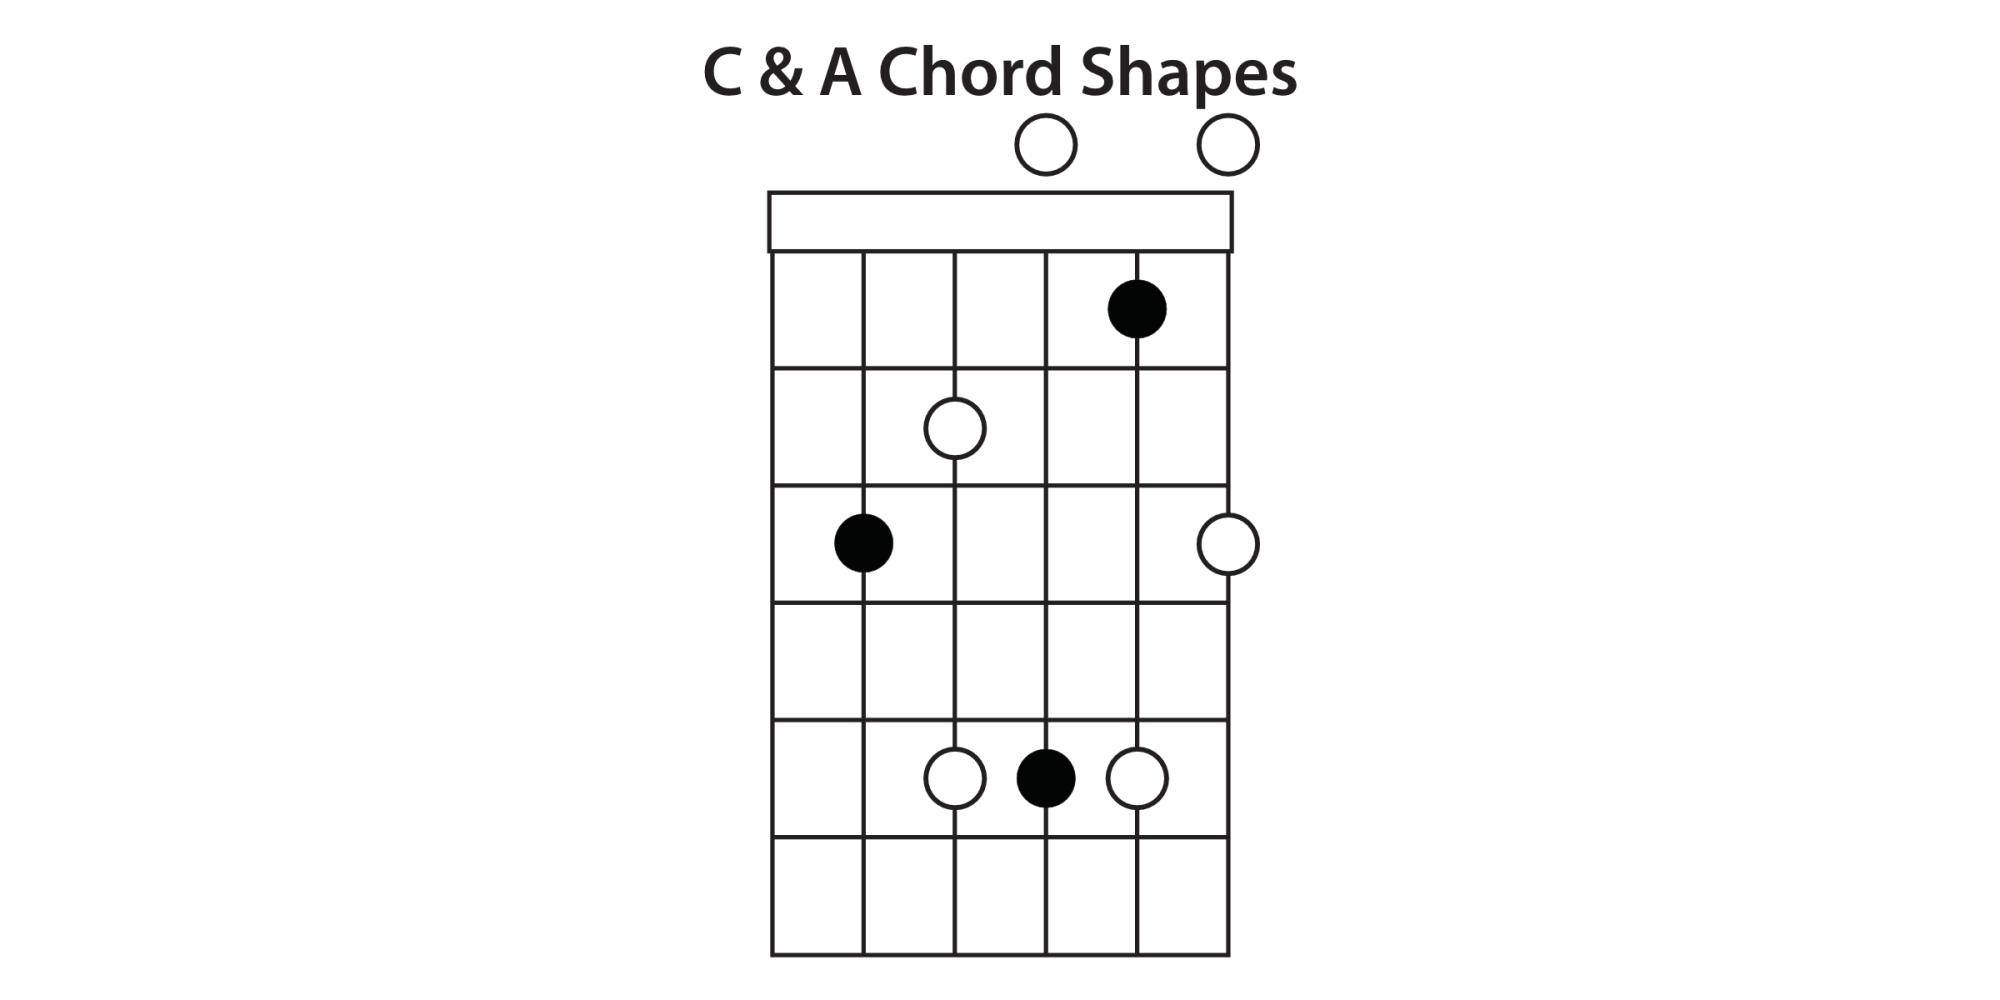 hight resolution of g shape the next chord in the caged sequence is the g chord shape the same rules apply here take the root note furthest up the fretboard from your a